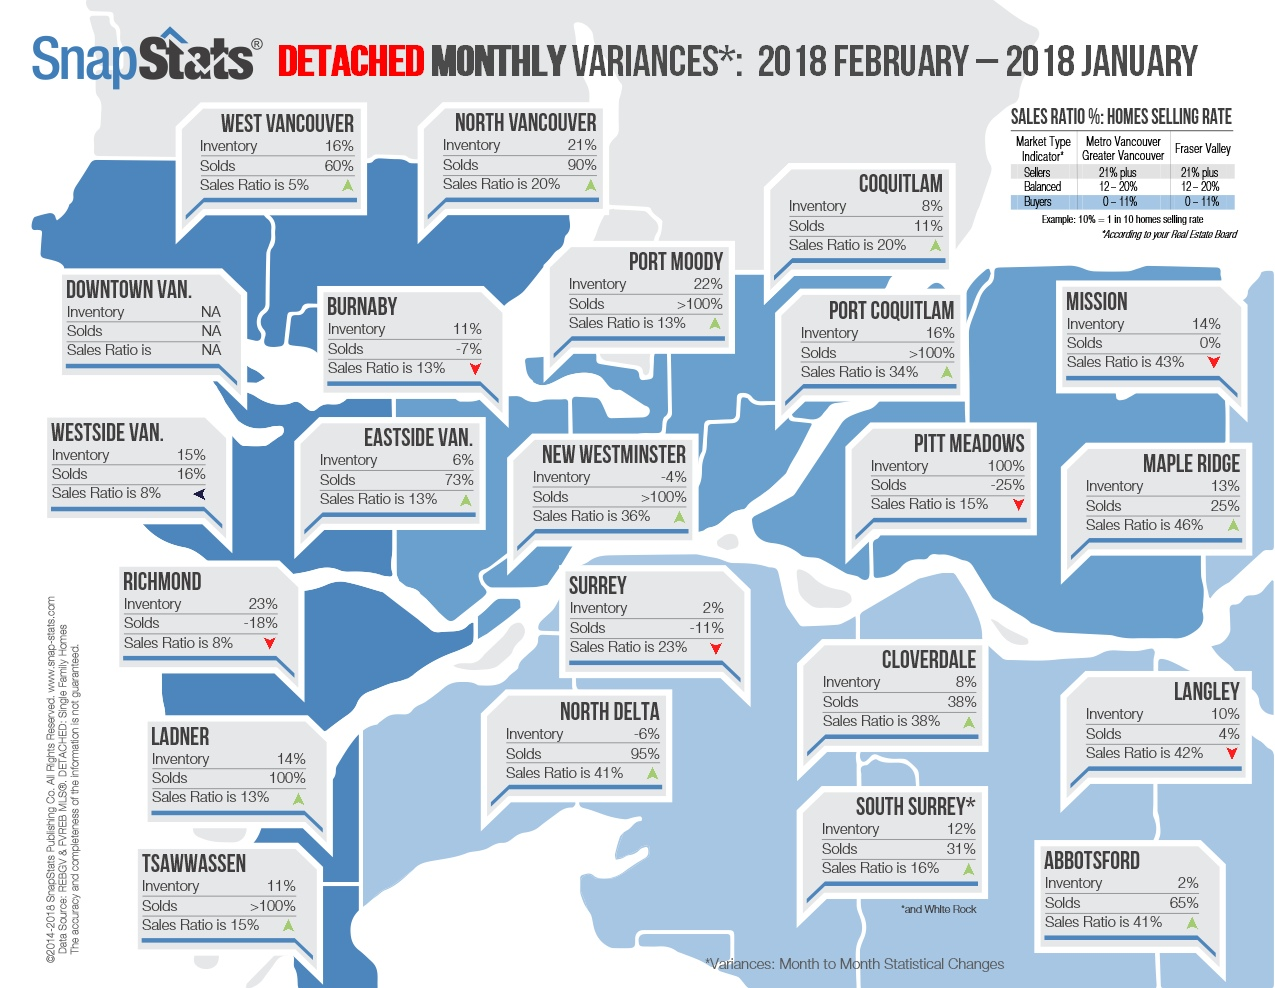 Snap Stats Detached Monthly Variances 2018 February - 2018 January